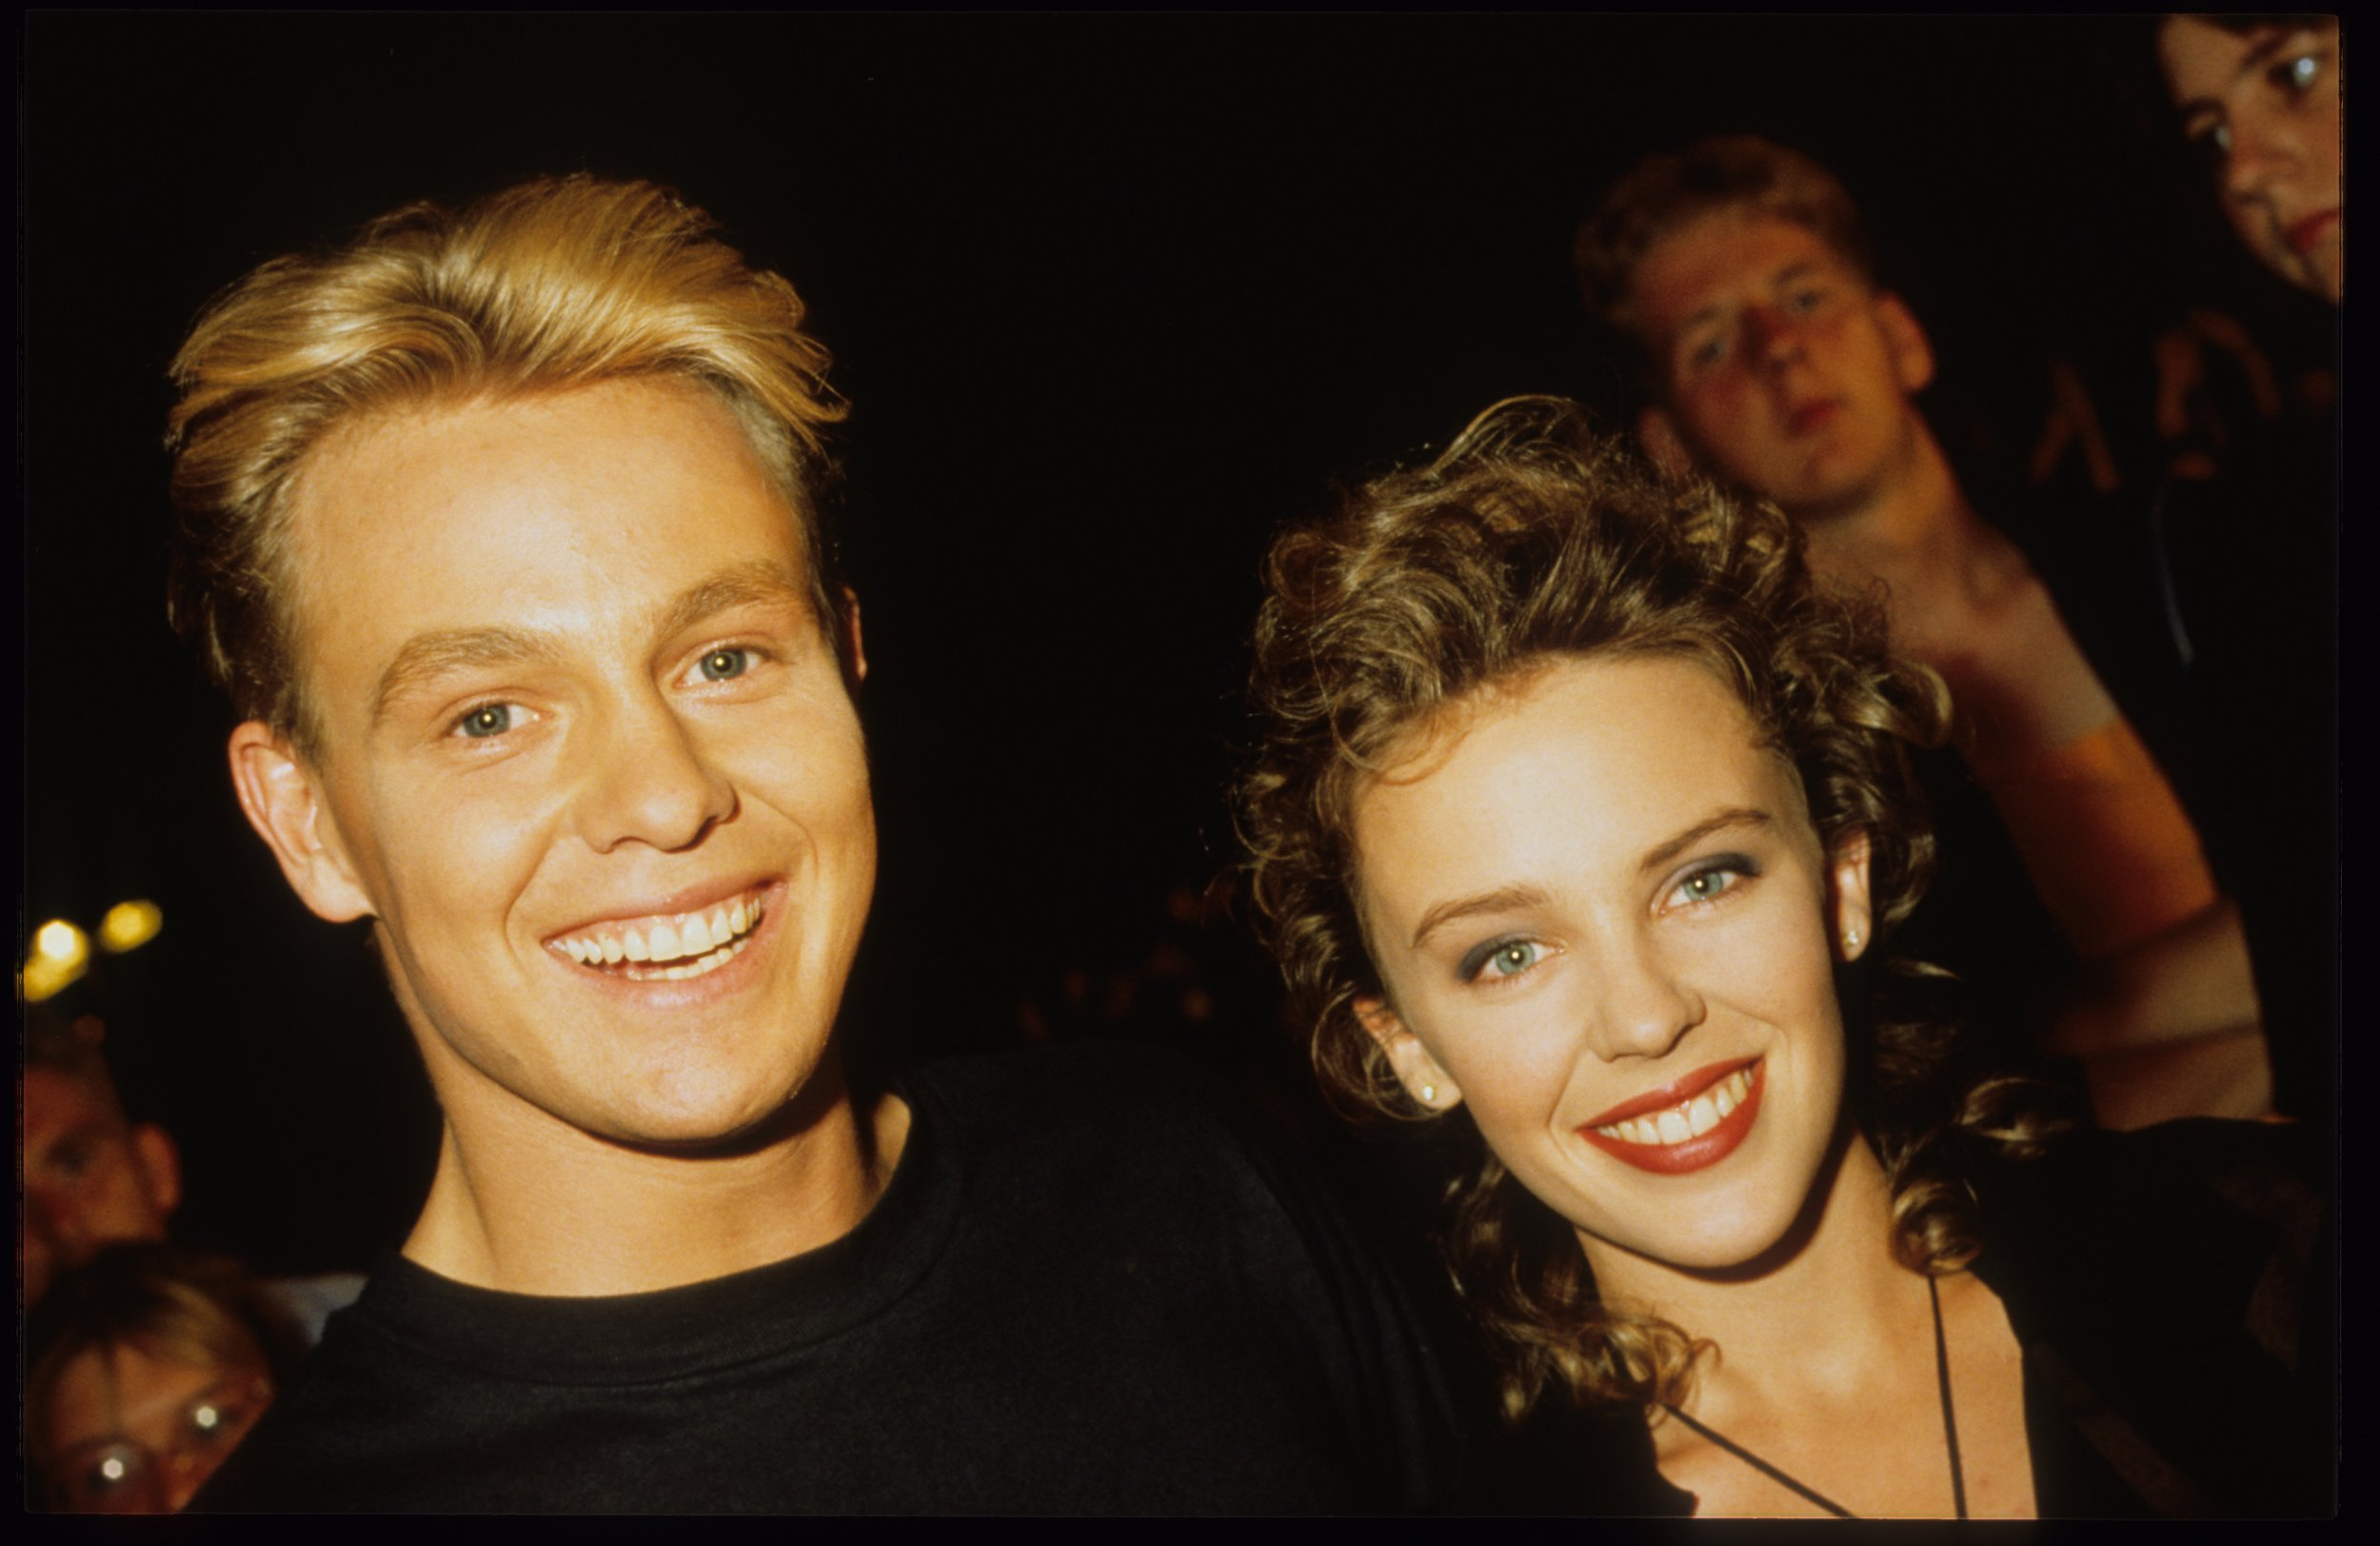 Kylie Minogue and Jason Donovan, TV Show 'Tien om te zien', Blankenberge, Belgium, 14/08/1989. (Photo by Gie Knaeps/Getty Images)